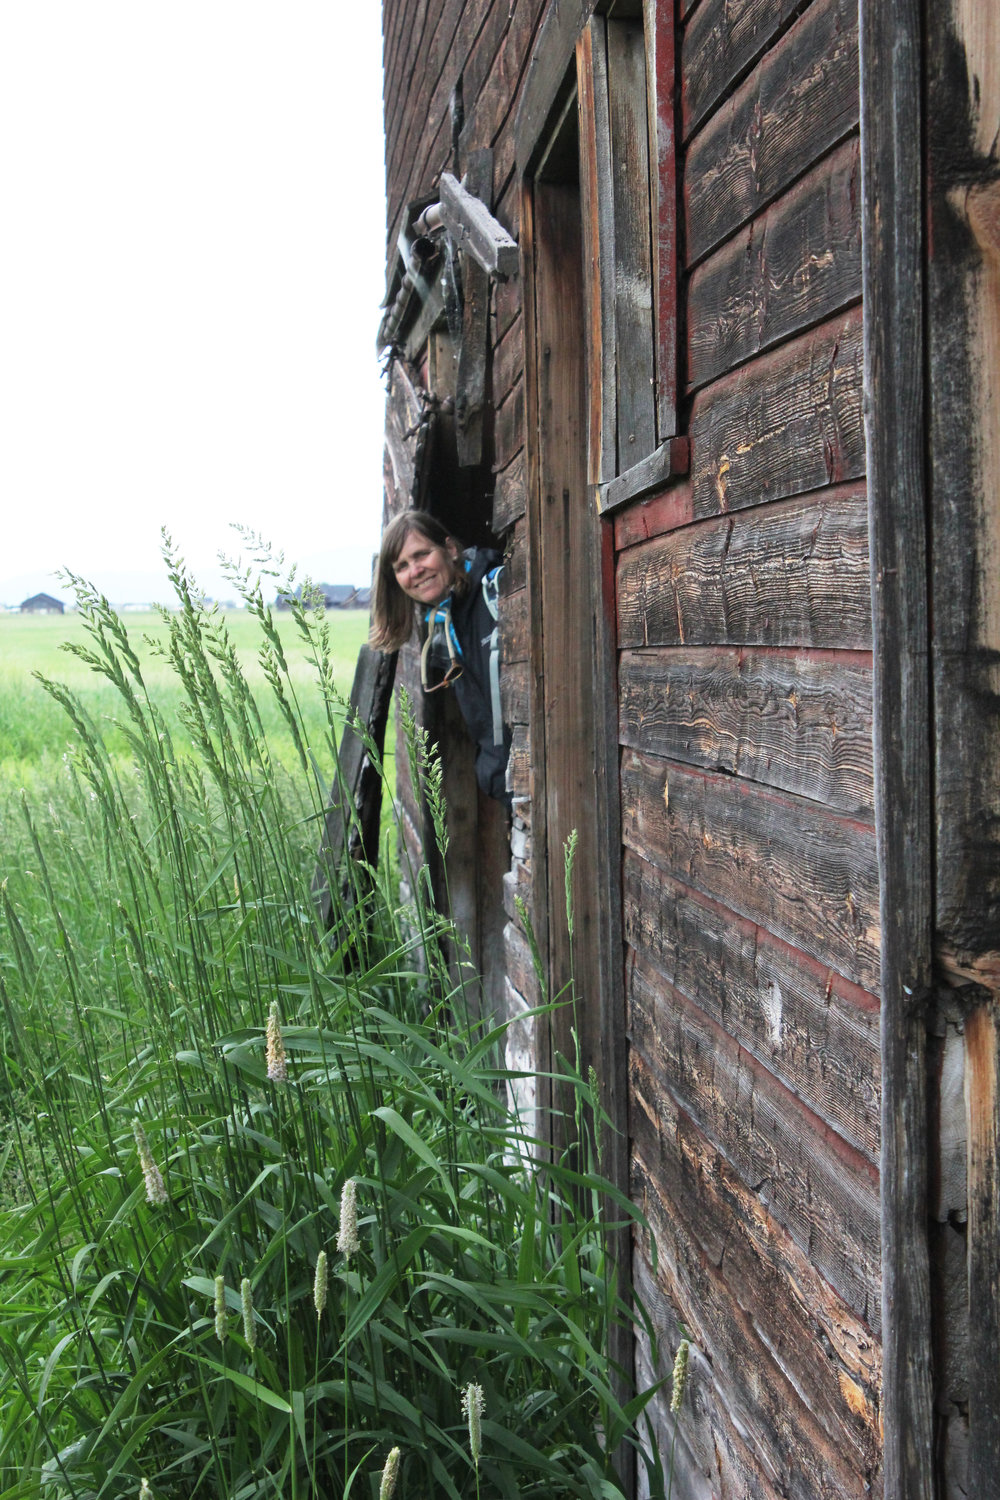 MPA Executive Director Chere Jiusto enjoyed the many photo opps in this barn.